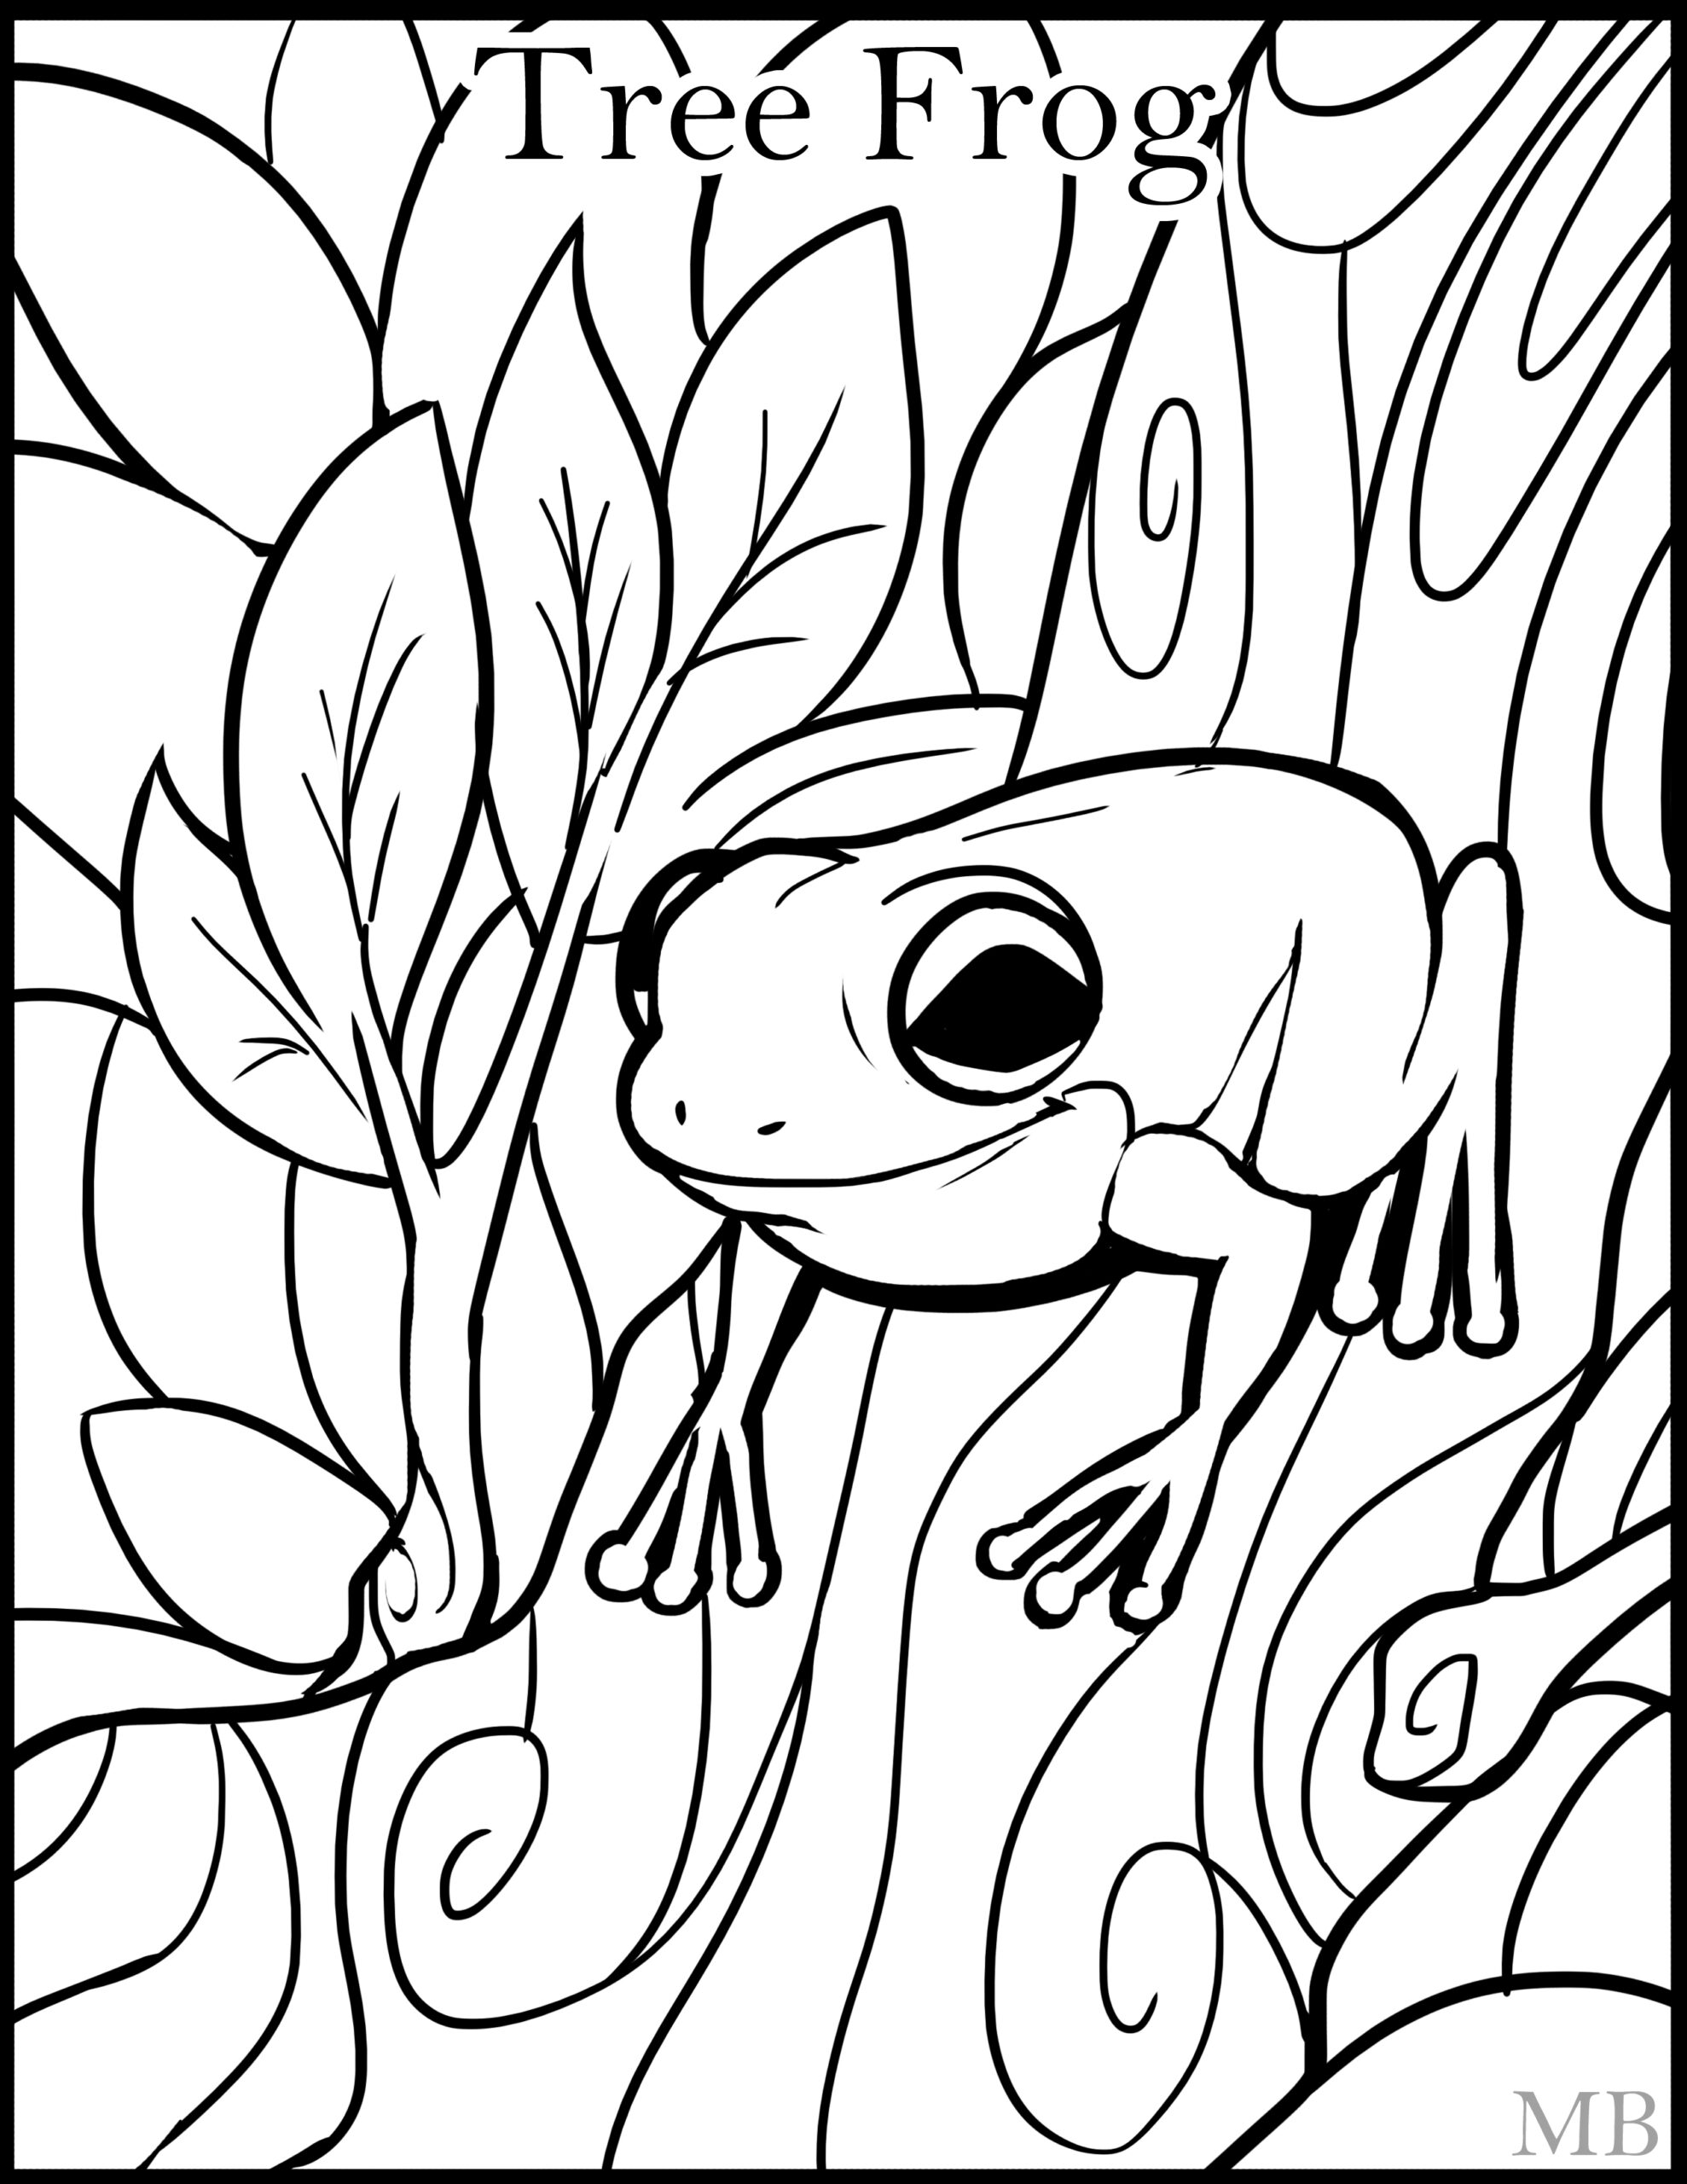 best ideas for coloring treefrog red eyed tree frog coloringpage by rhazcrossbones coloring pages Red Eyed Tree Frog Coloring Page